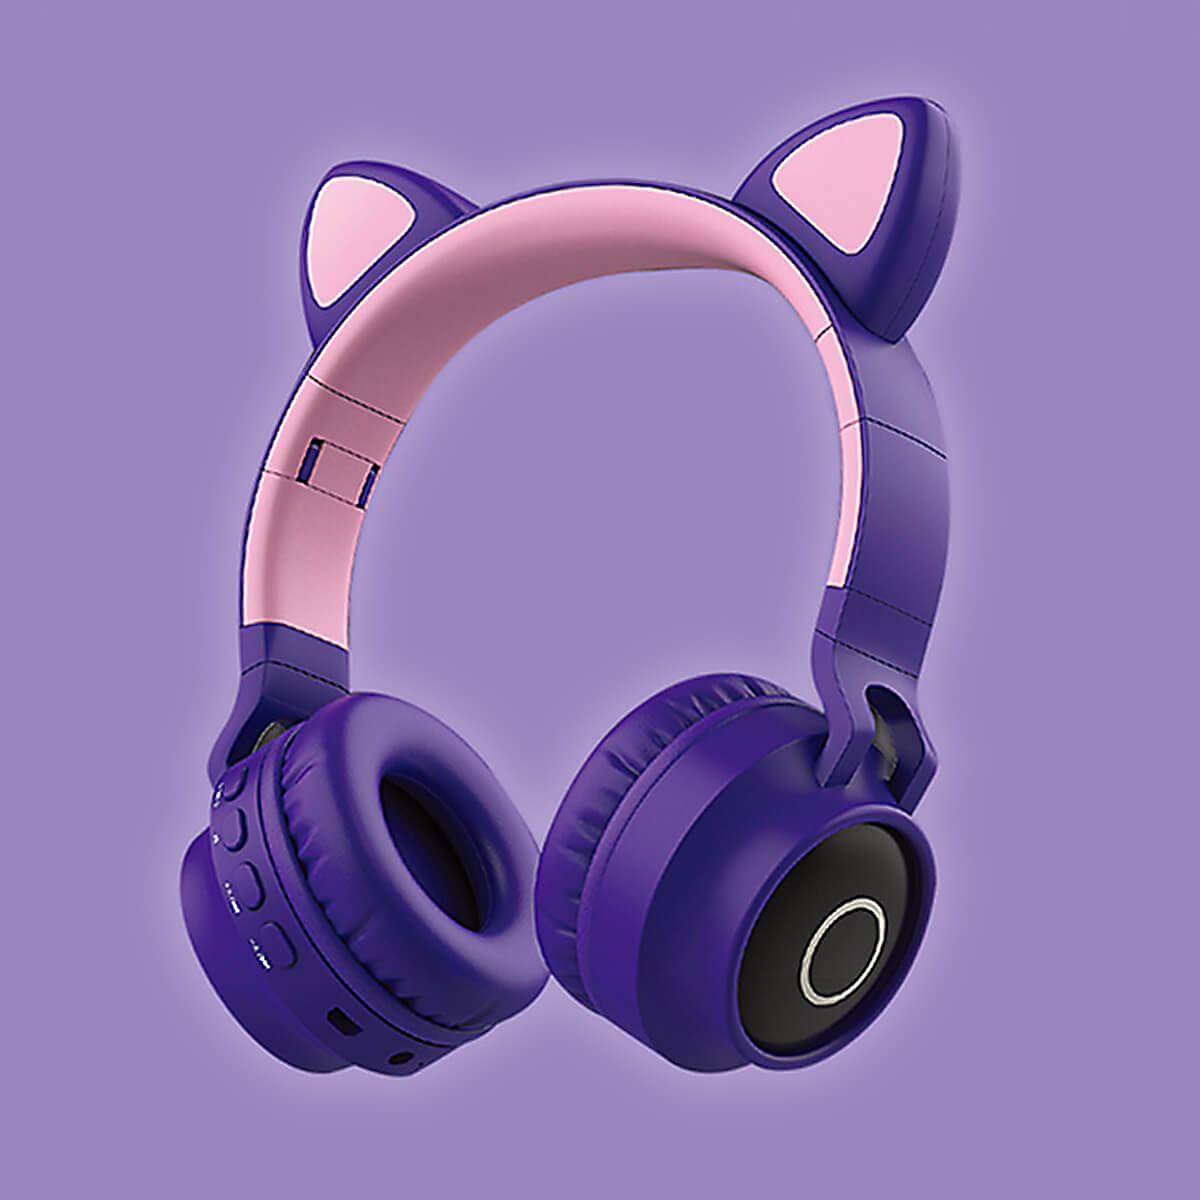 Cat Headphones Kitty Tunes, cute wireless headphone with cat ears - product image purple earphones